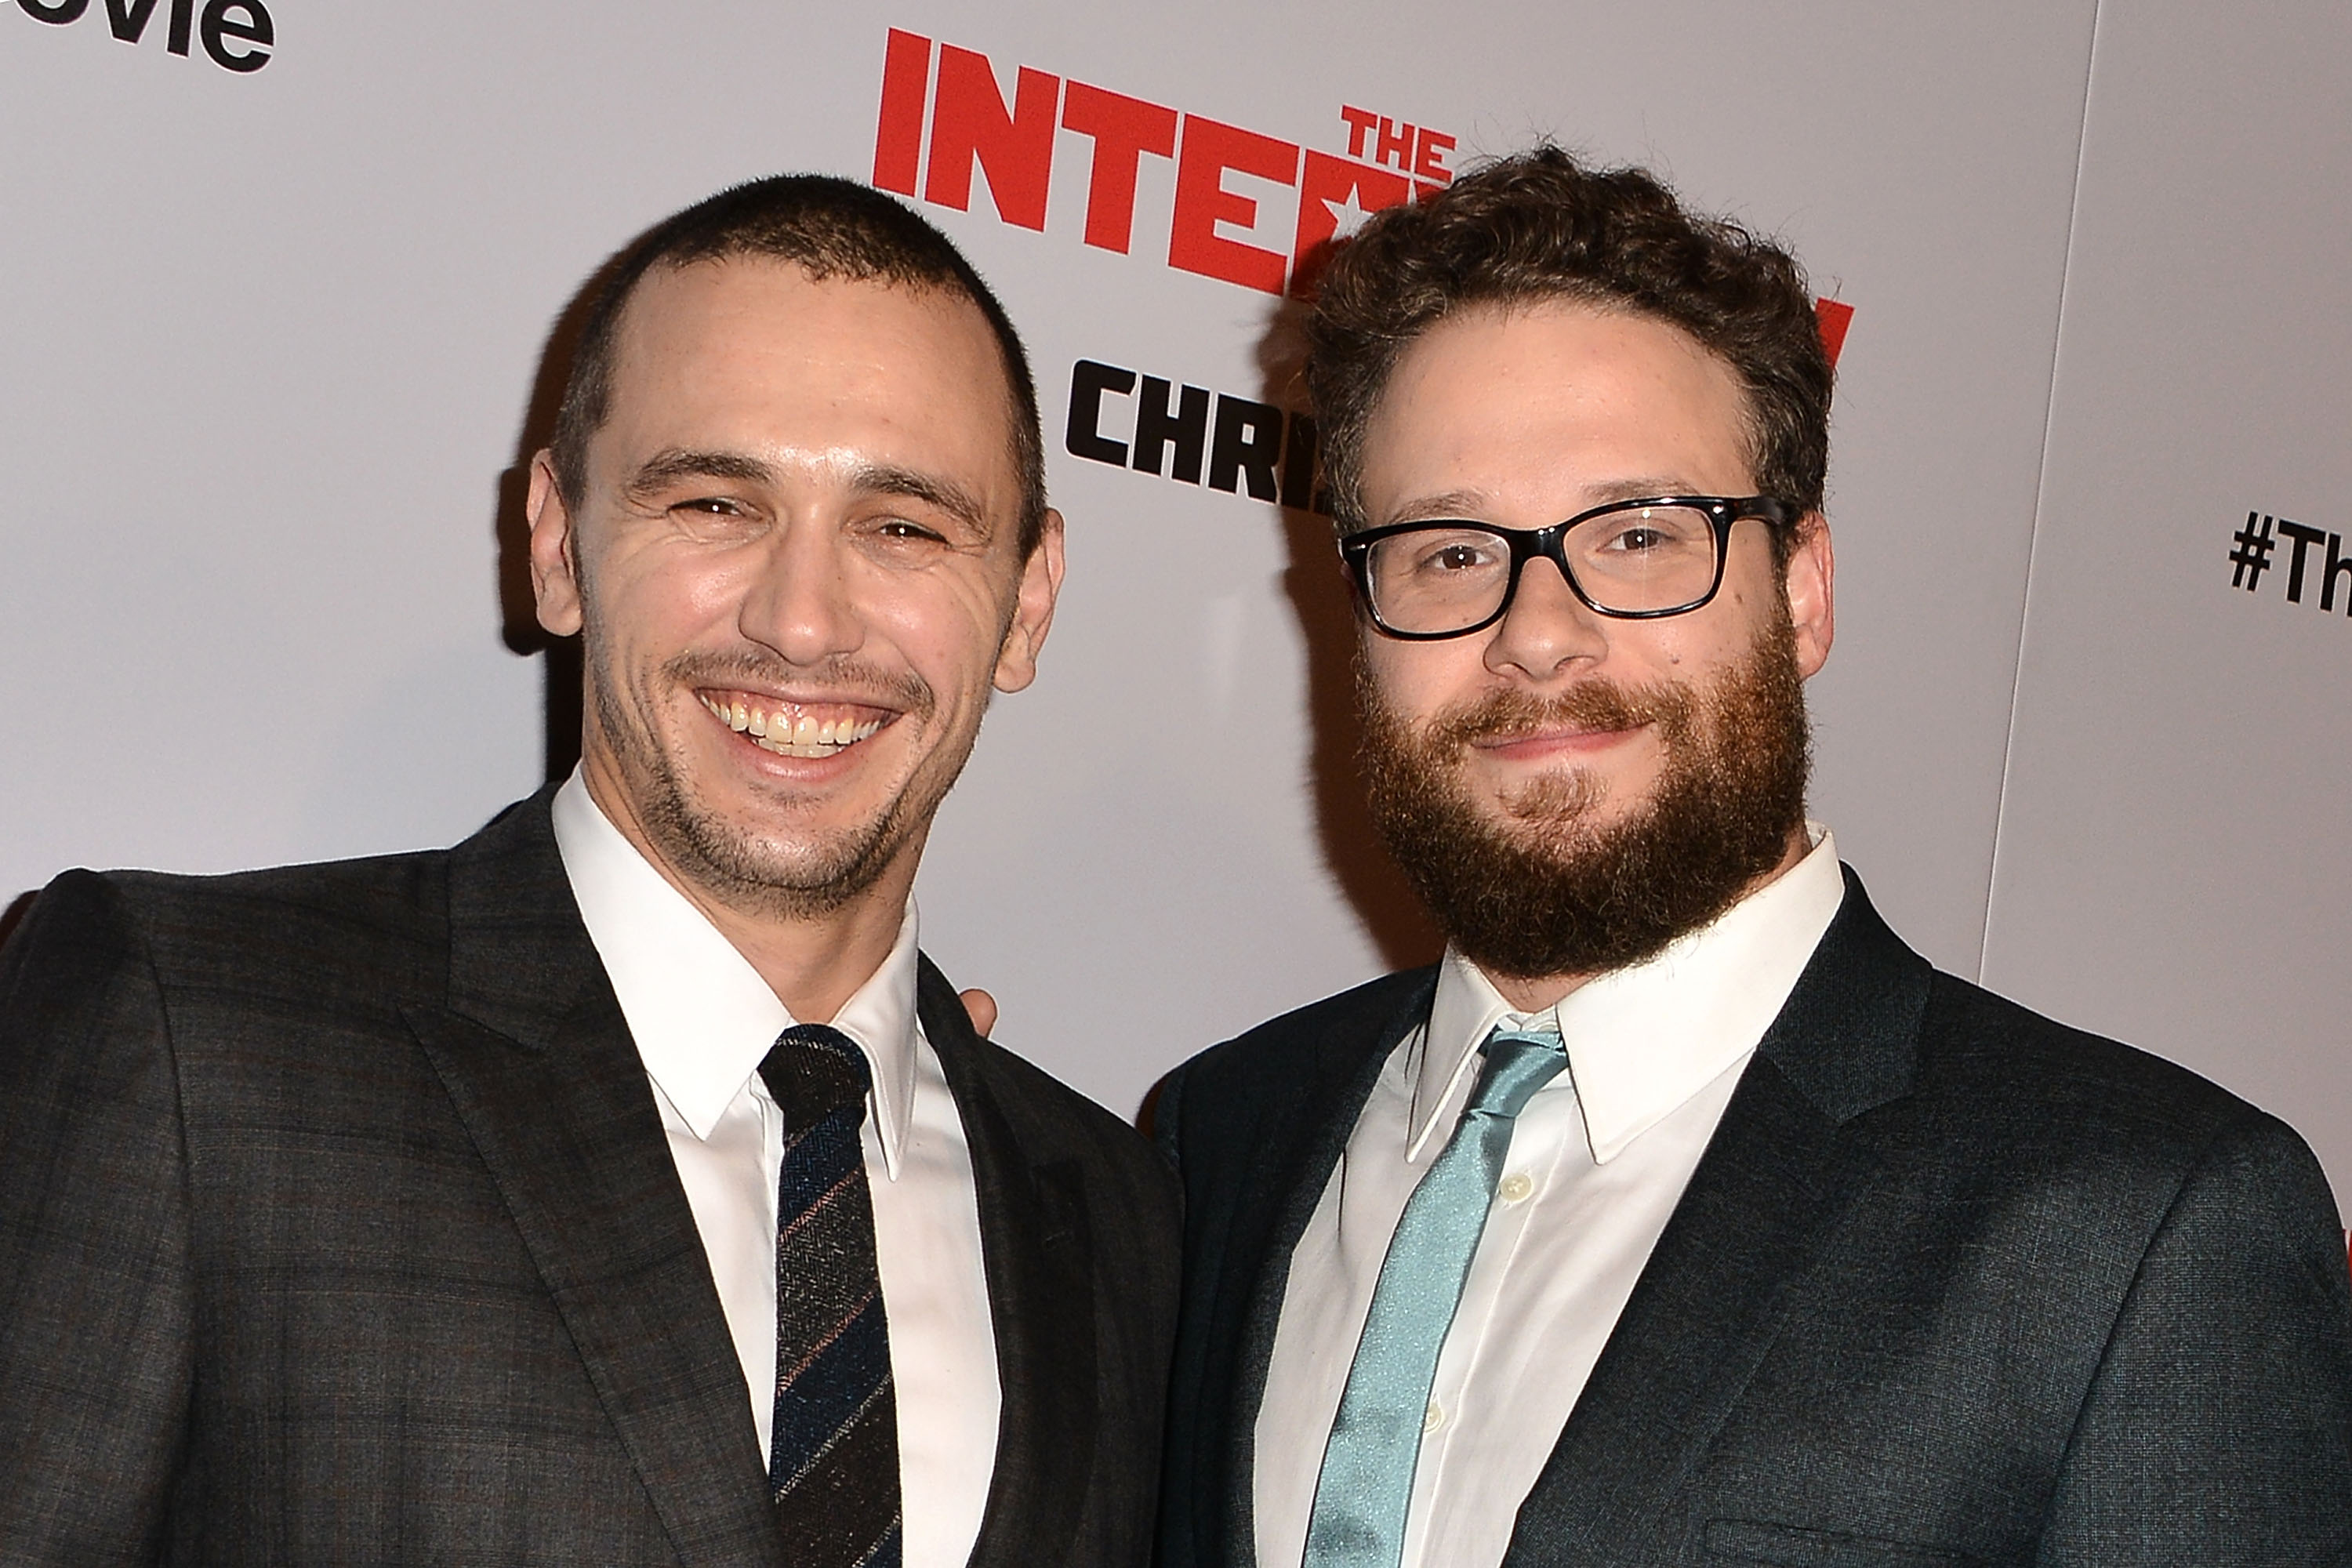 Actors James Franco and Seth Rogen at the Los Angeles premiere of The Interview on Dec. 11, 2014